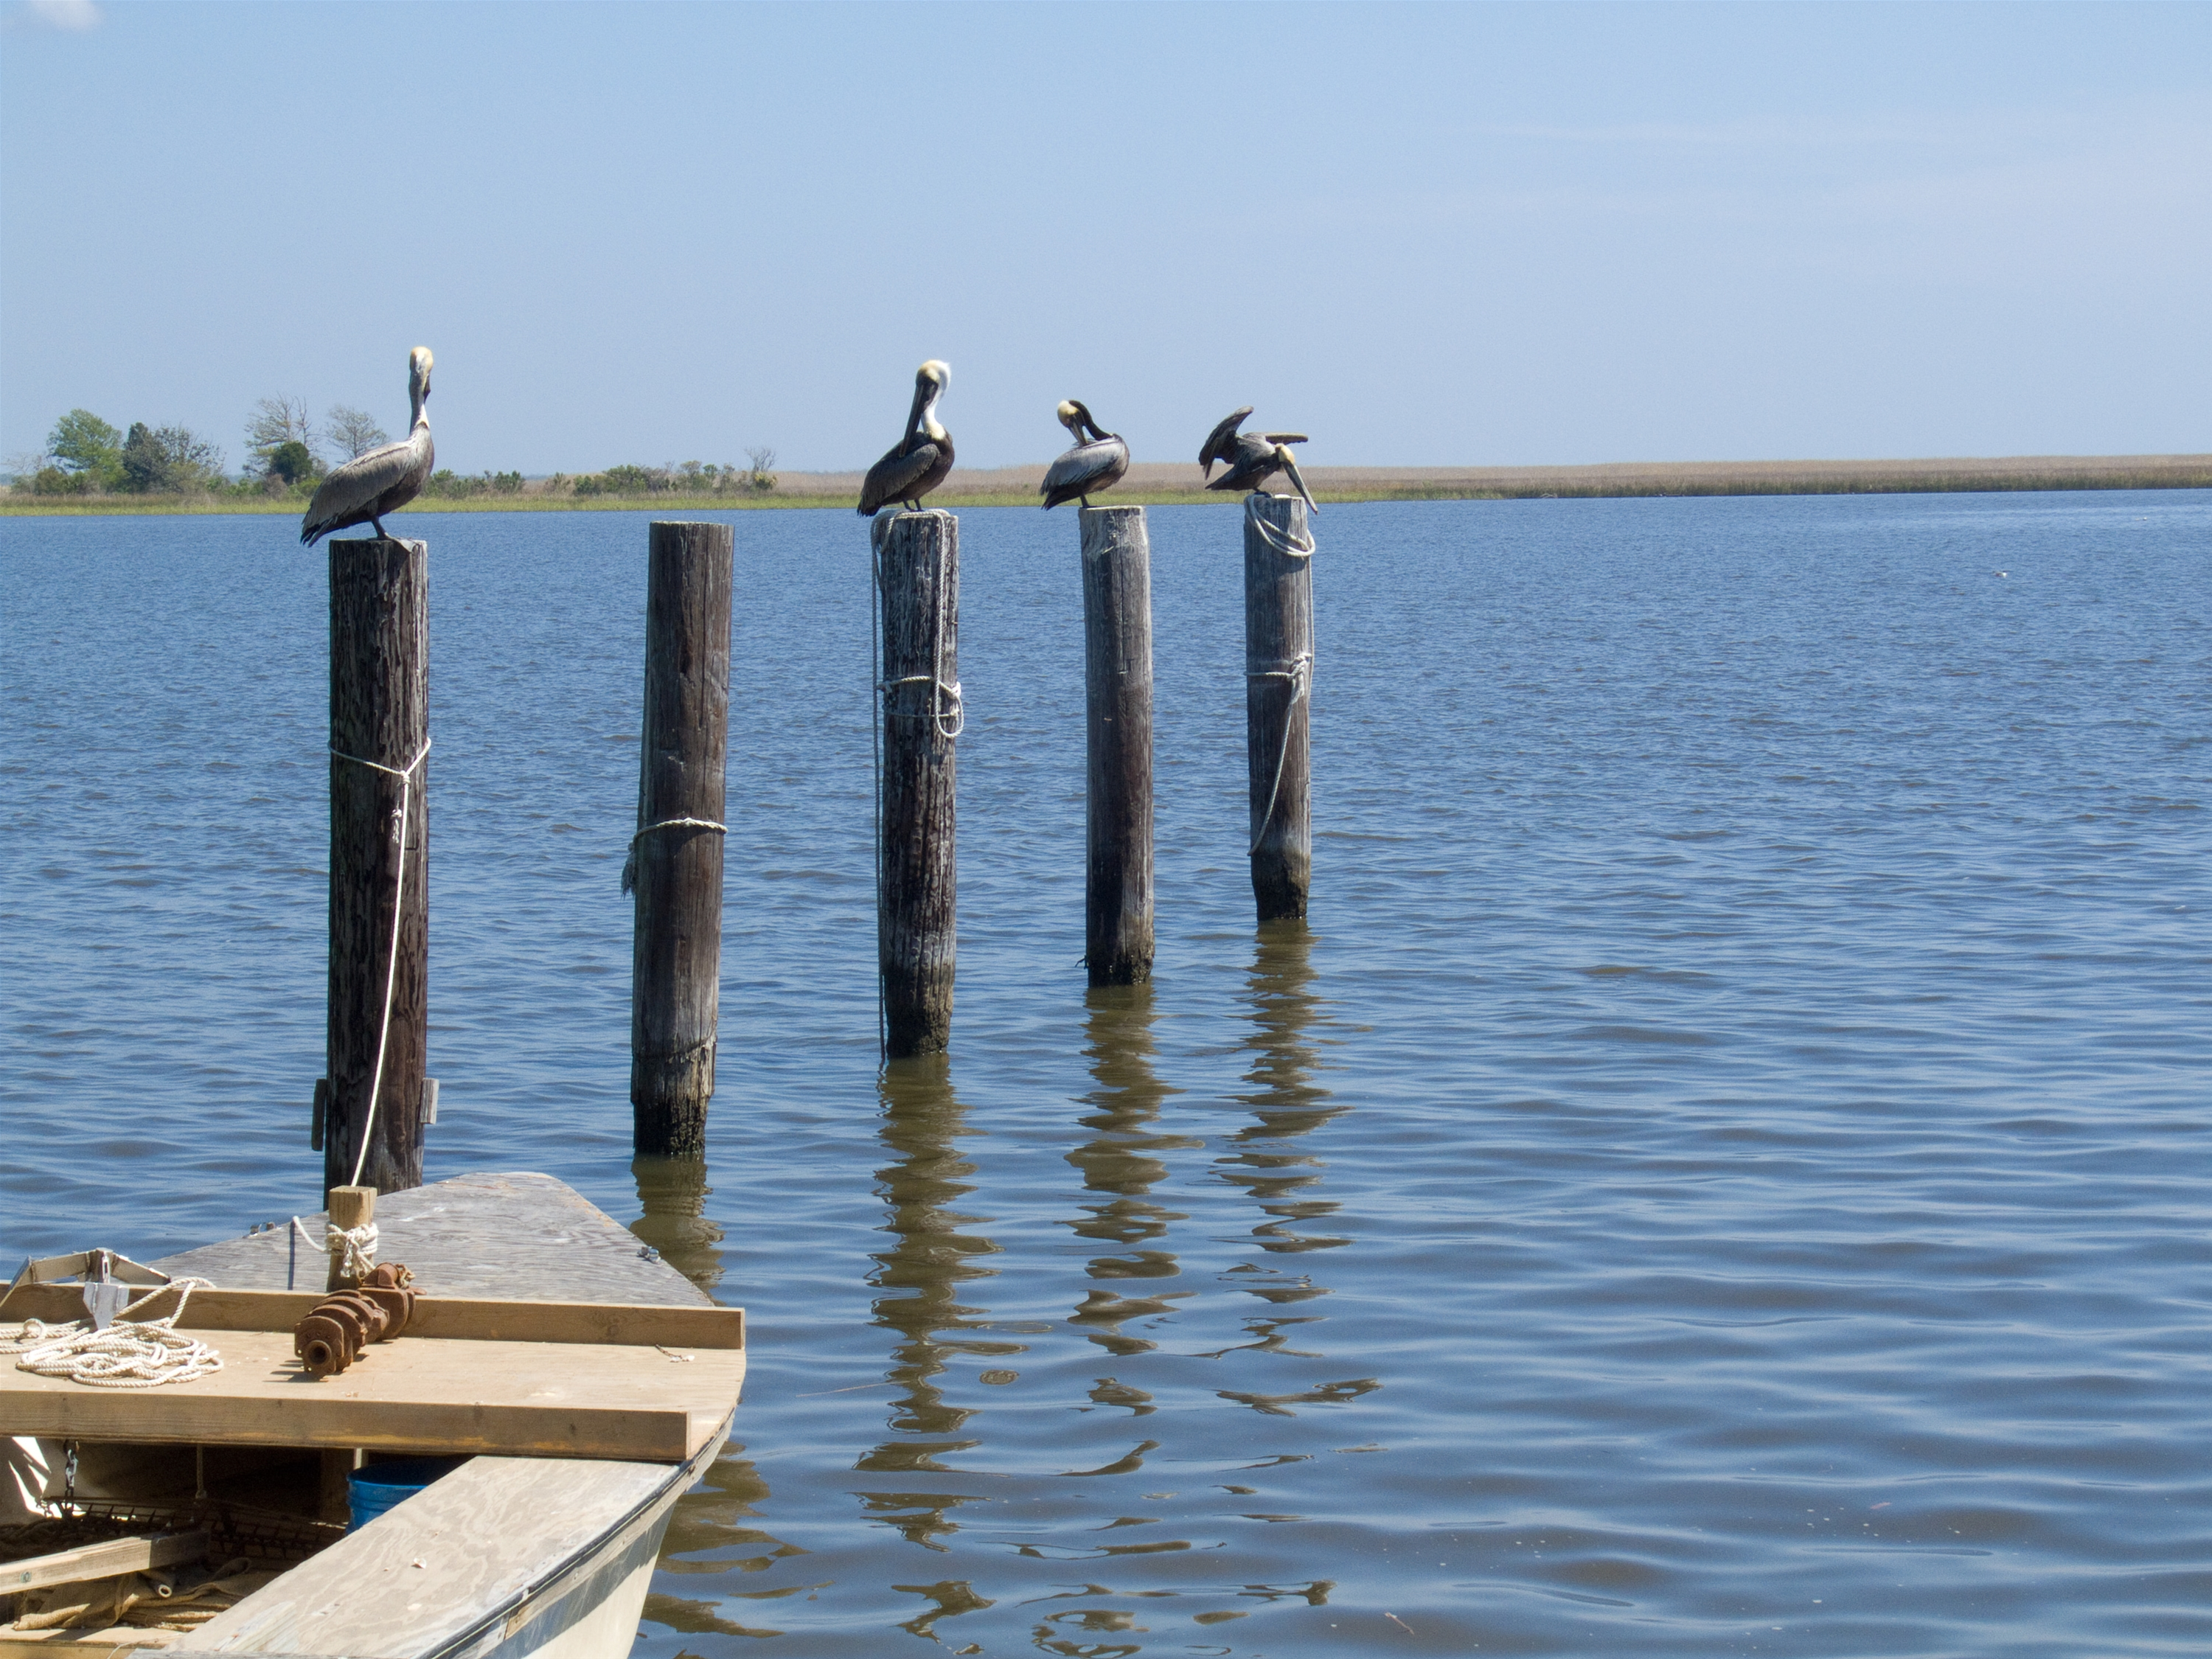 FeaturePics-Apalachicola-095746-1346490